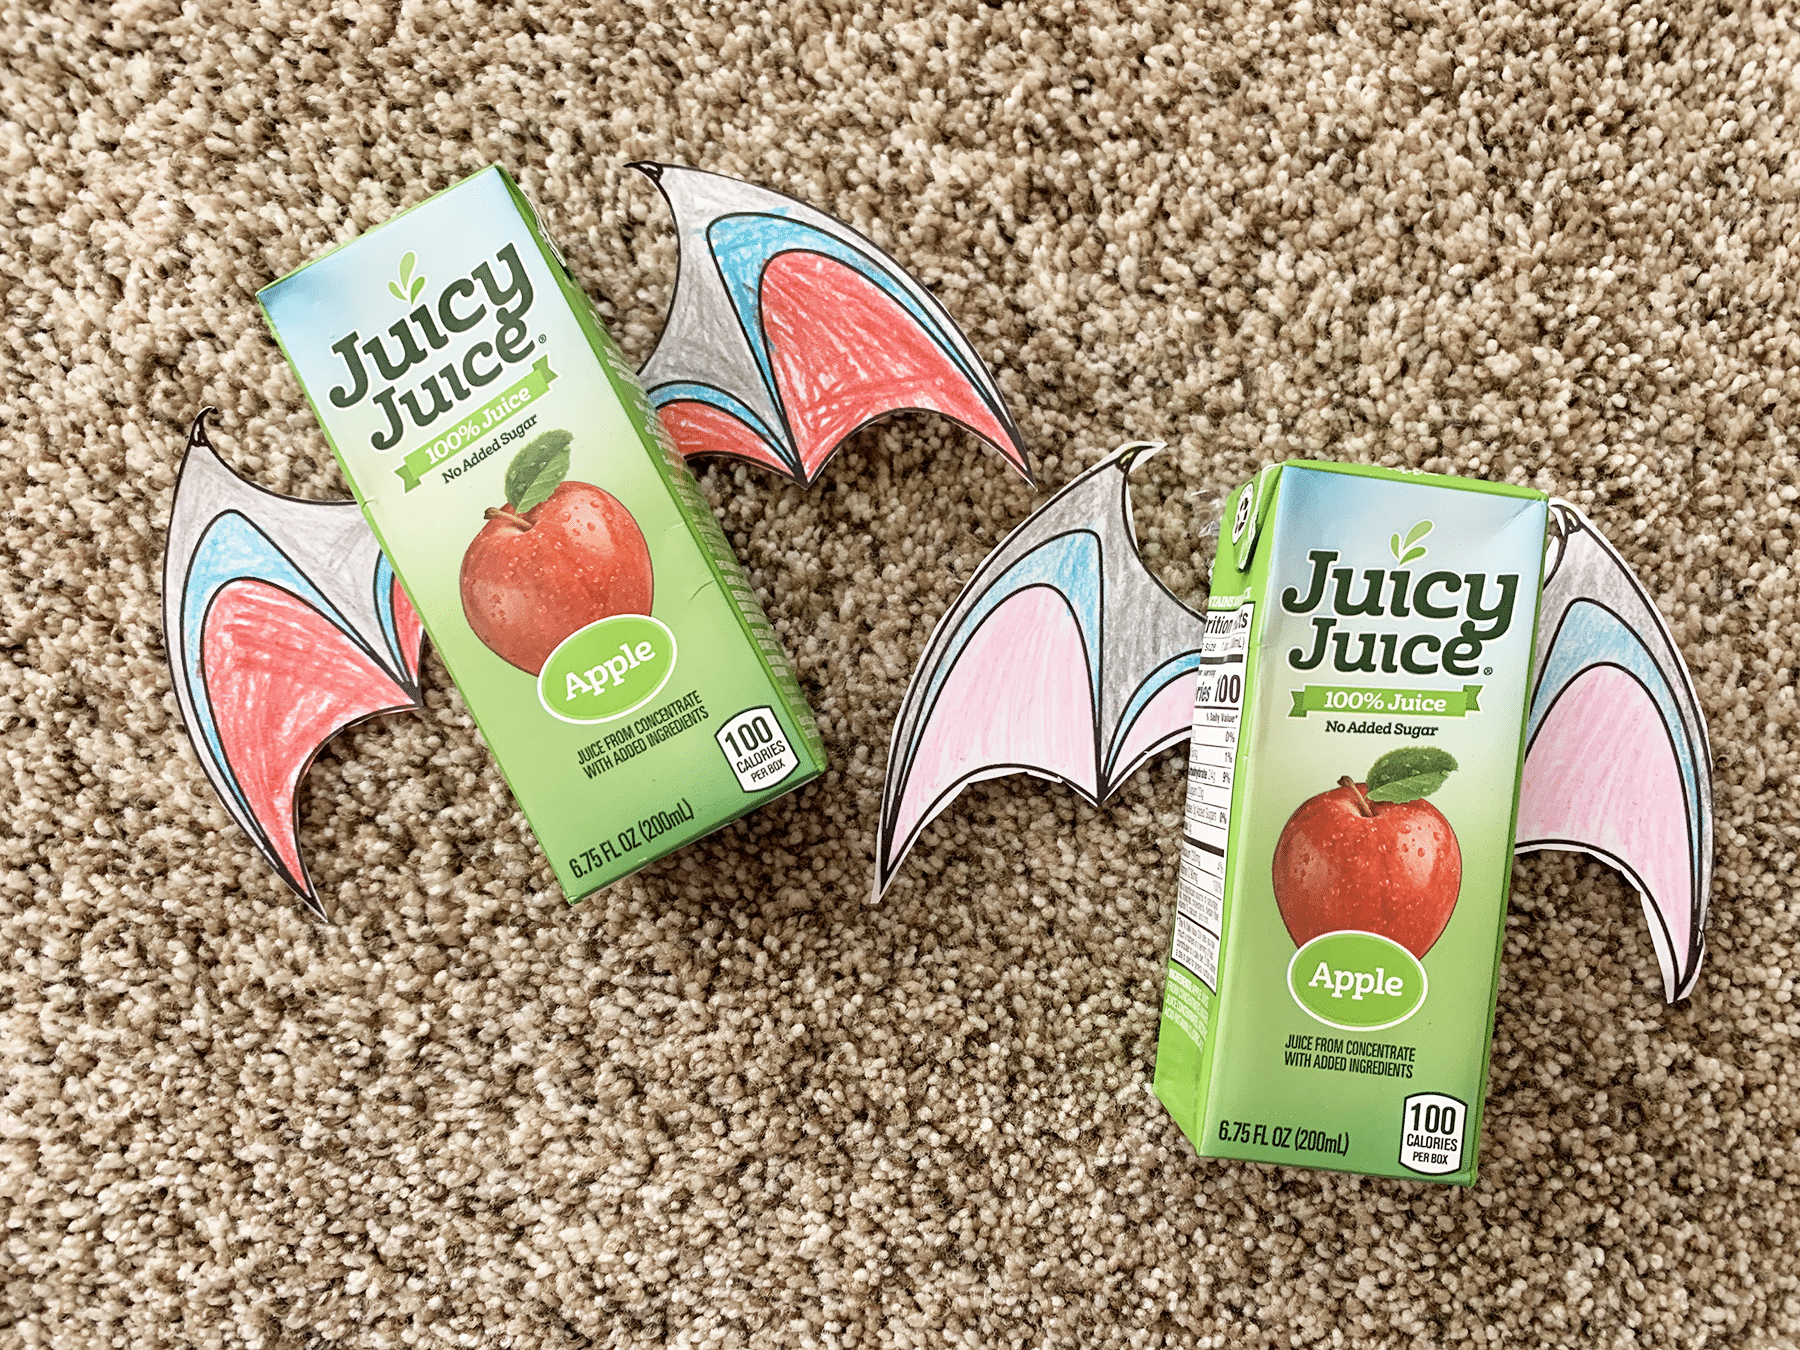 bat juice boxes